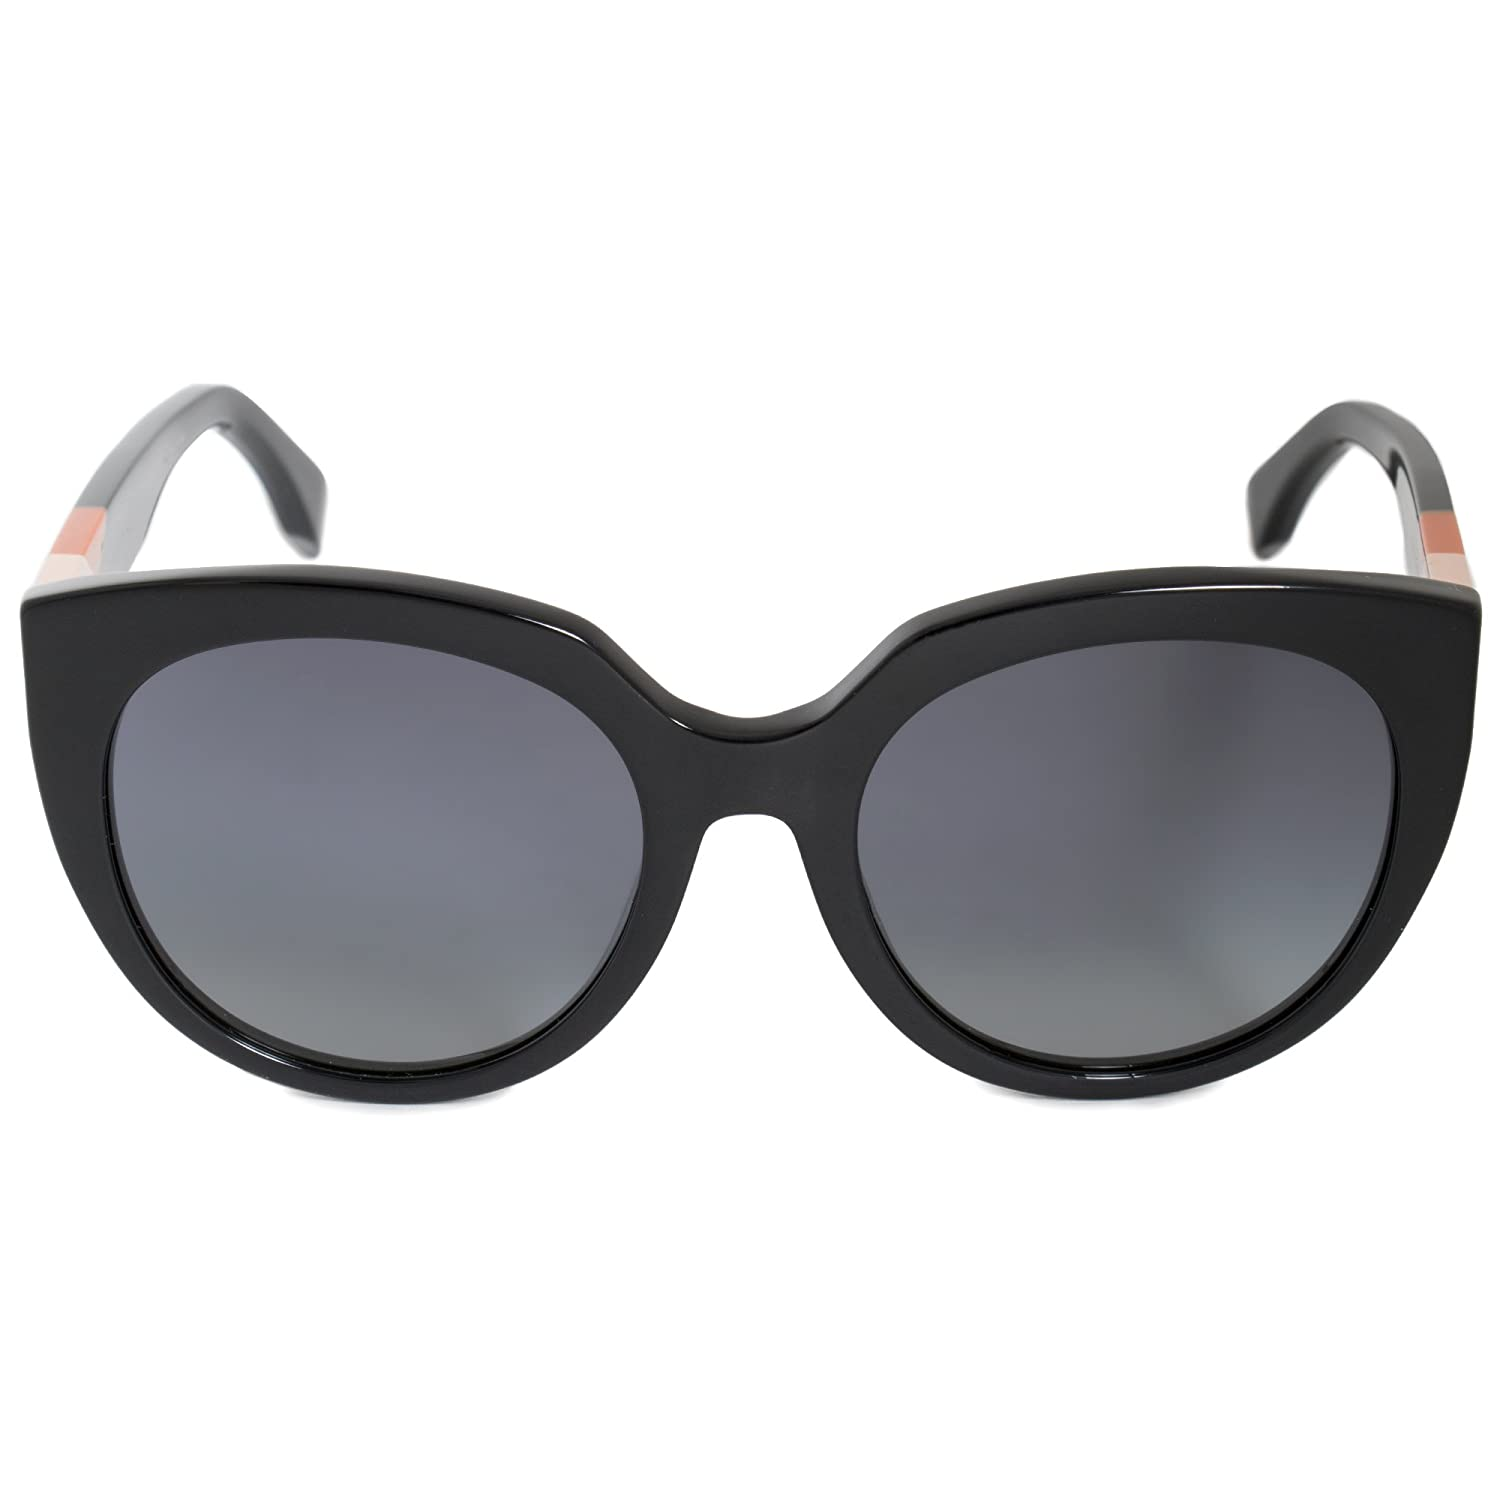 054e6ff8 Sunglasses Fendi Ff 182 /F/S 0807 Black/HD gray gradient lens at ...